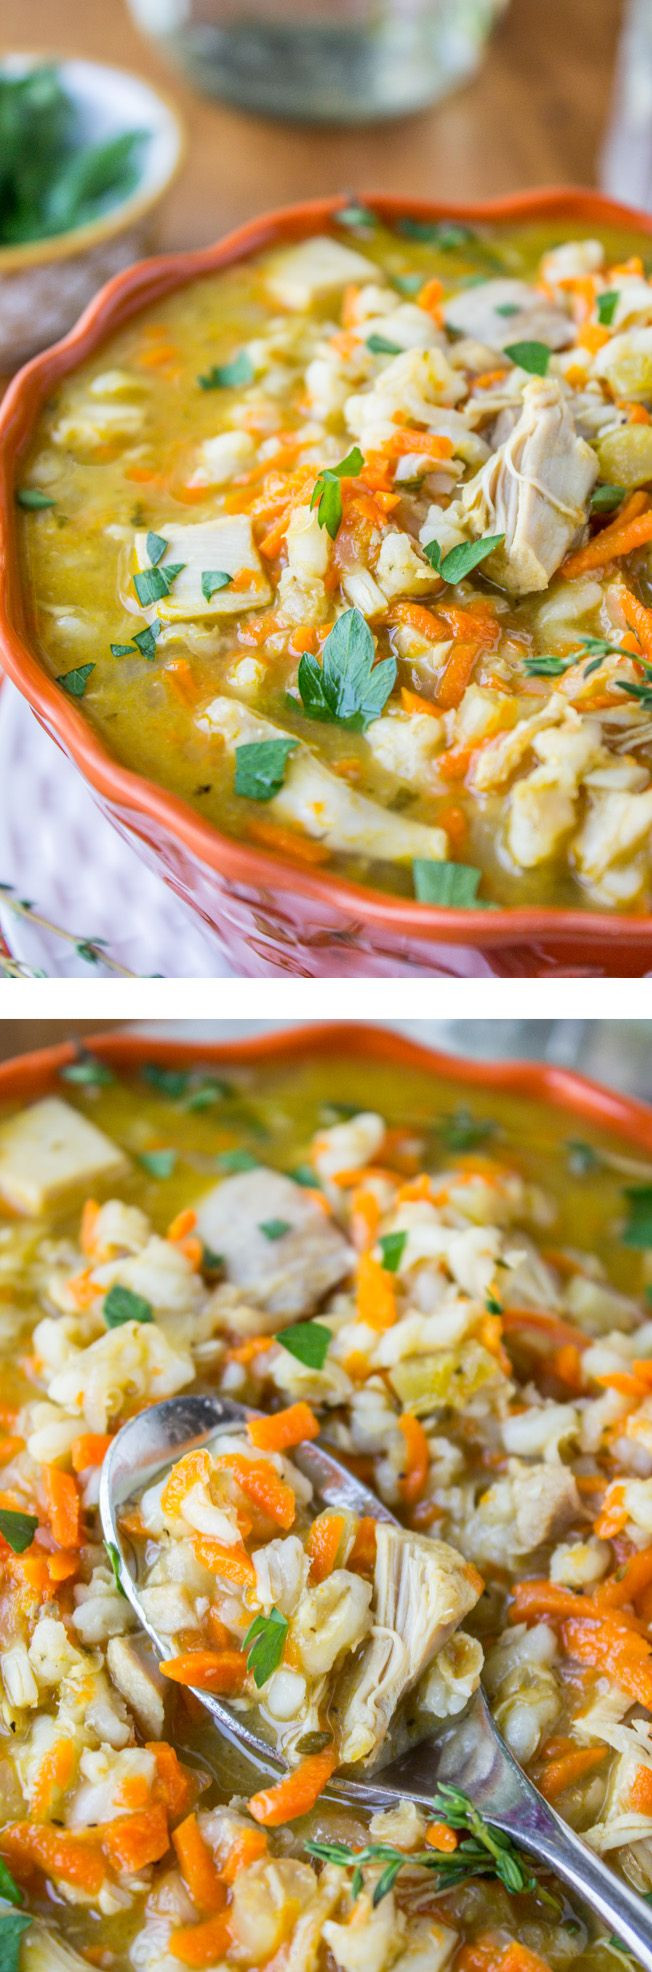 Turkey Soup From Thanksgiving Leftovers  17 Best images about Turkey Leftovers on Pinterest